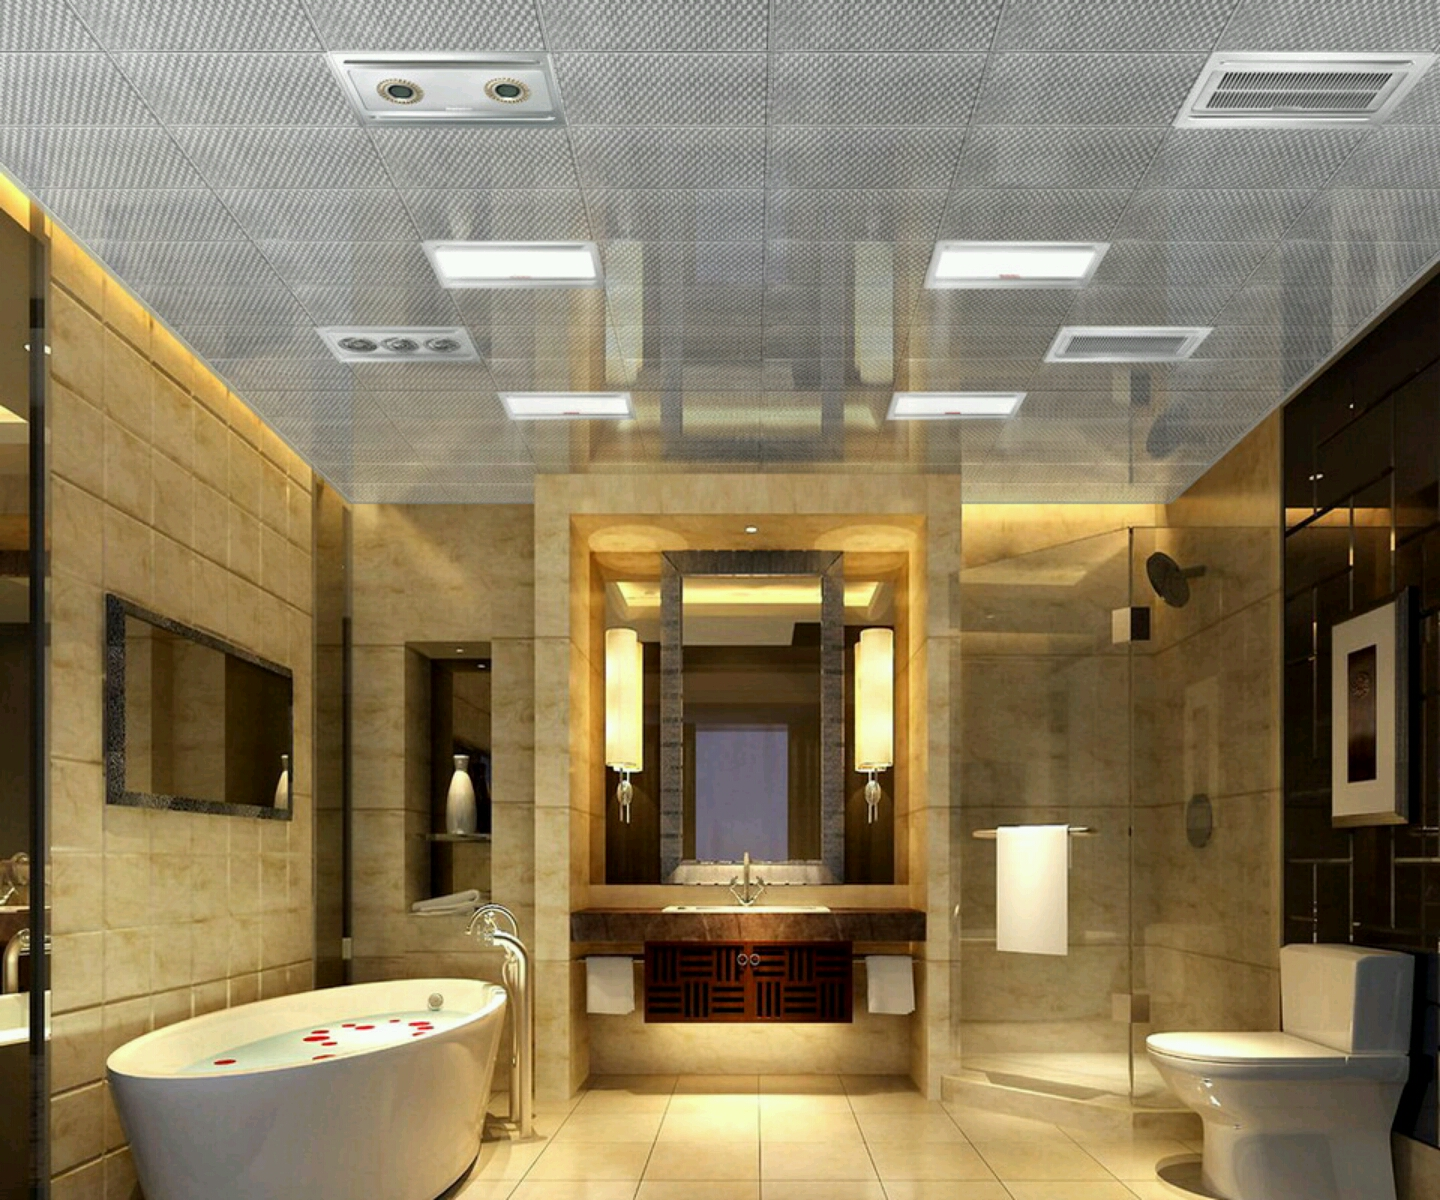 Luxury Ceiling Design 30 Beautiful Pictures And Ideas High End Bathroom Tile Designs